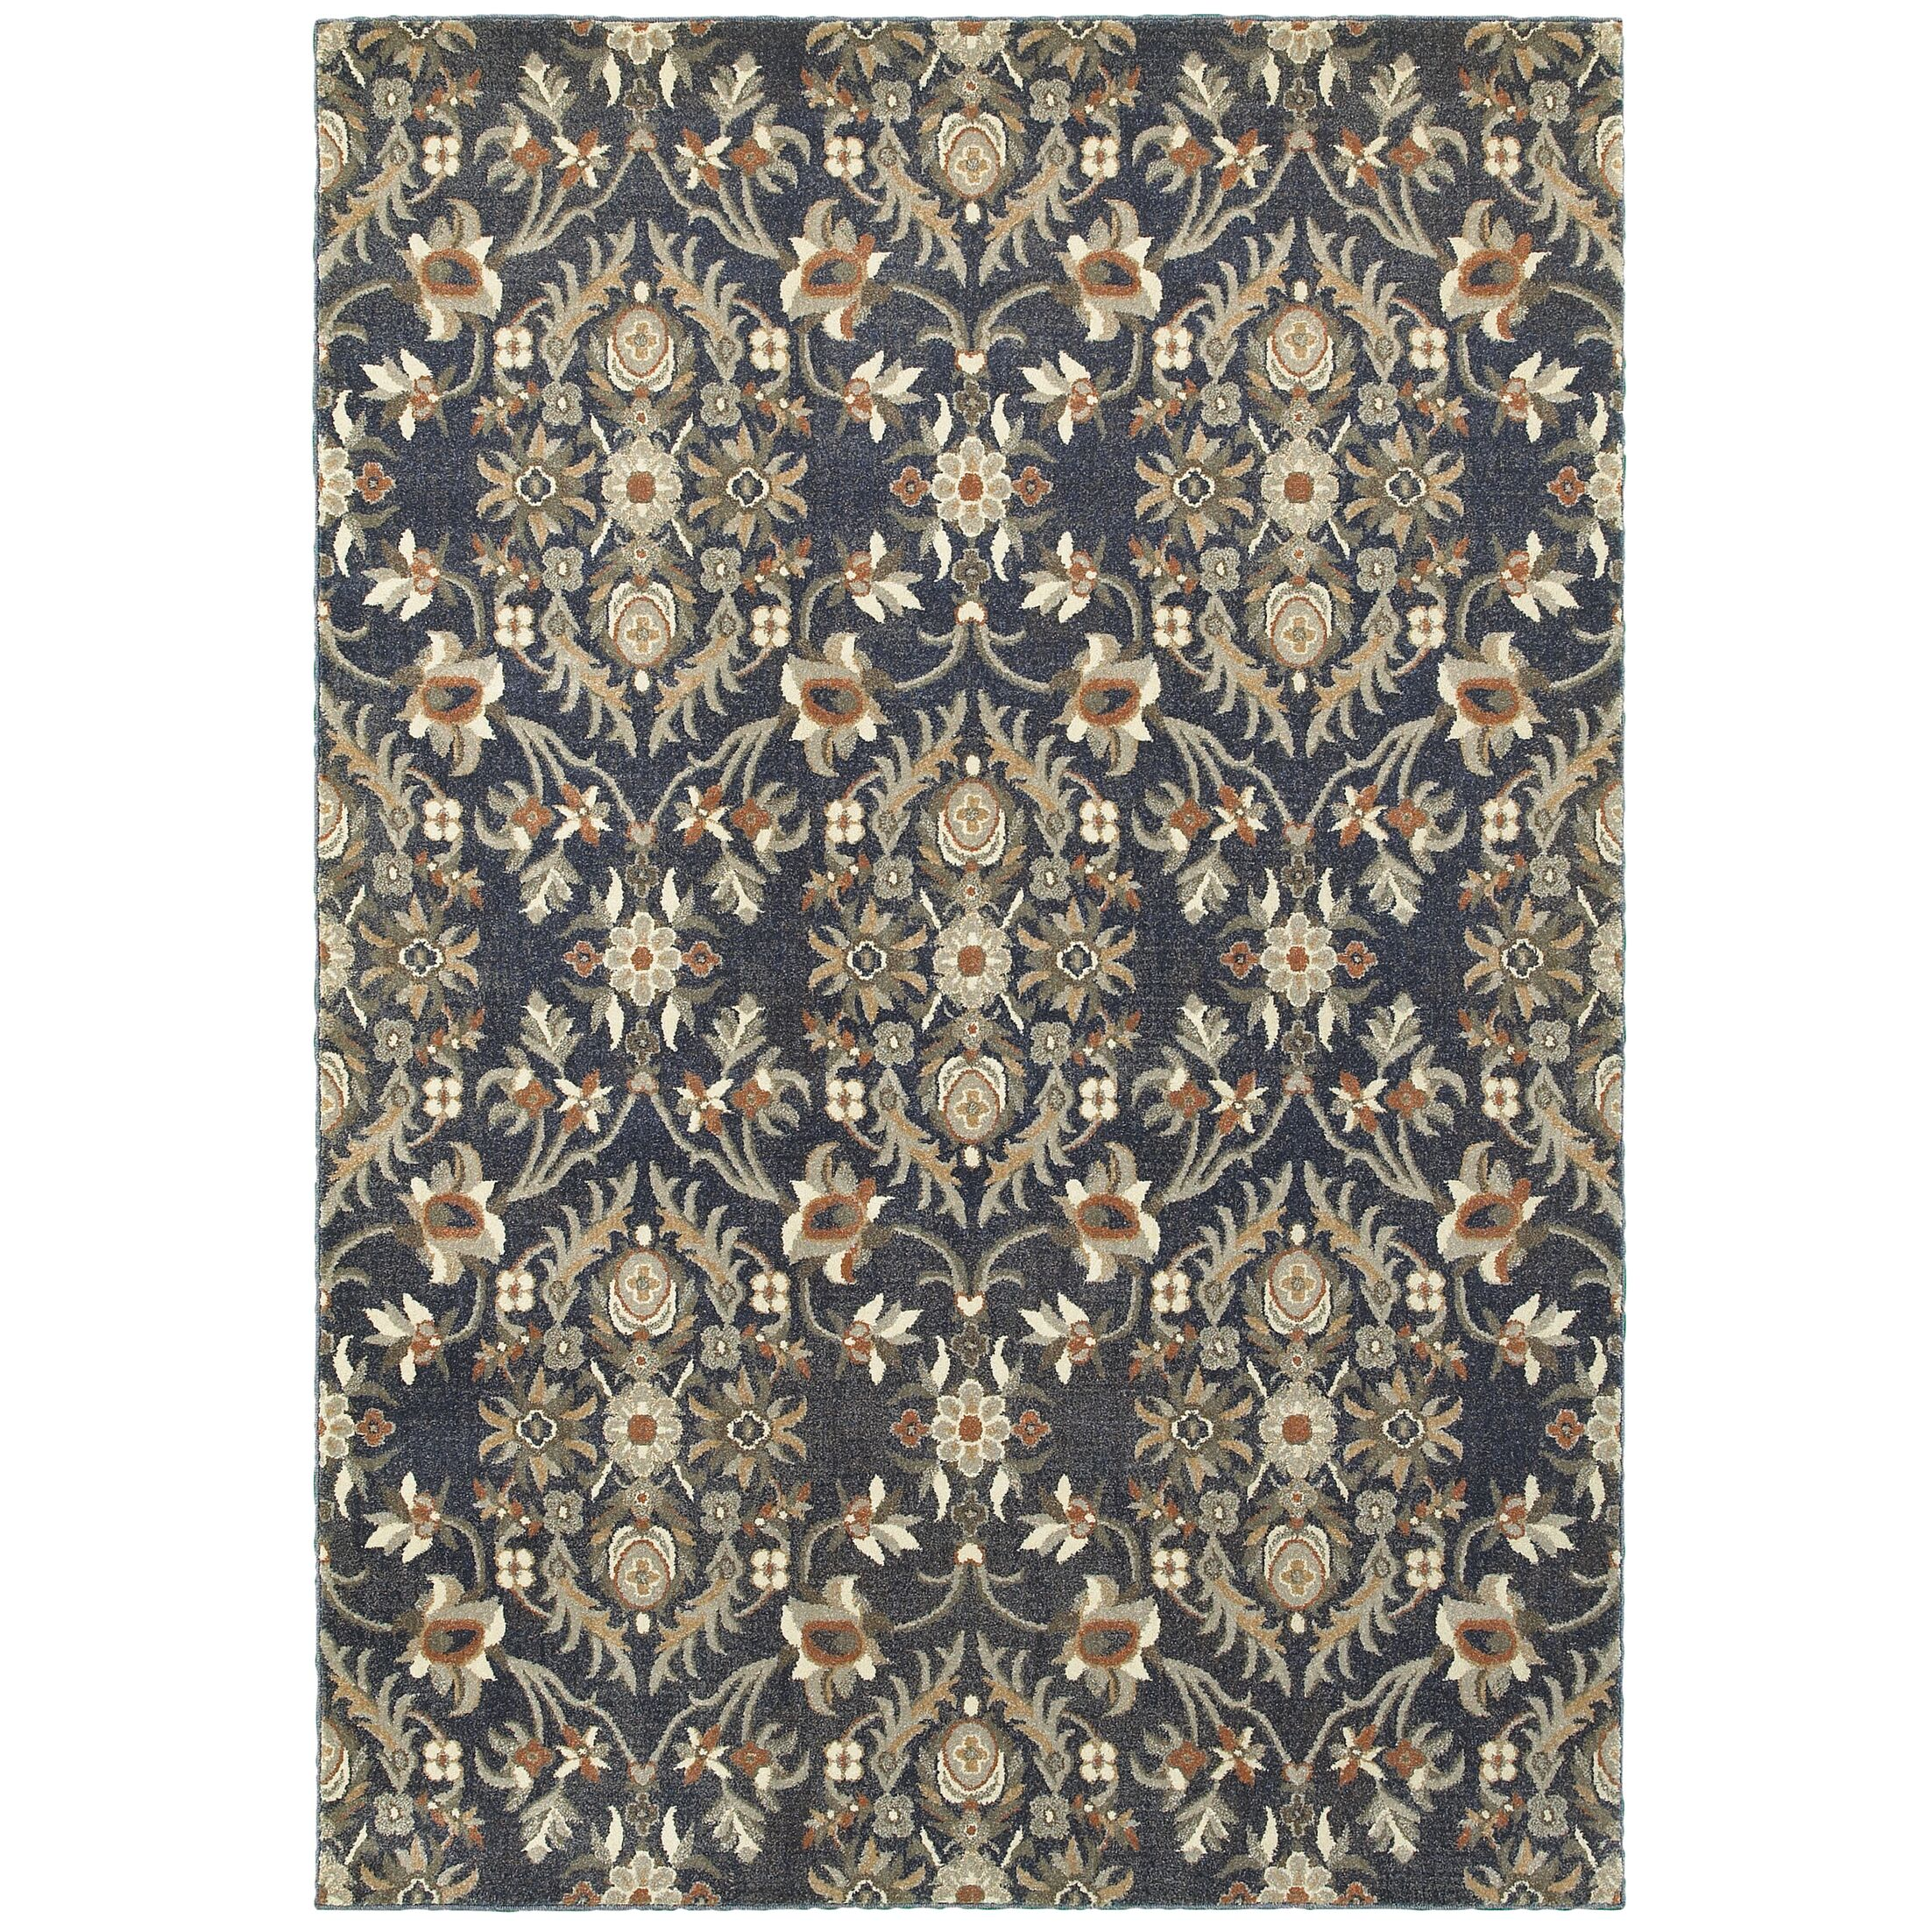 Sacha Black/Brown Area Rug Rug Size: Rectangle 3'10